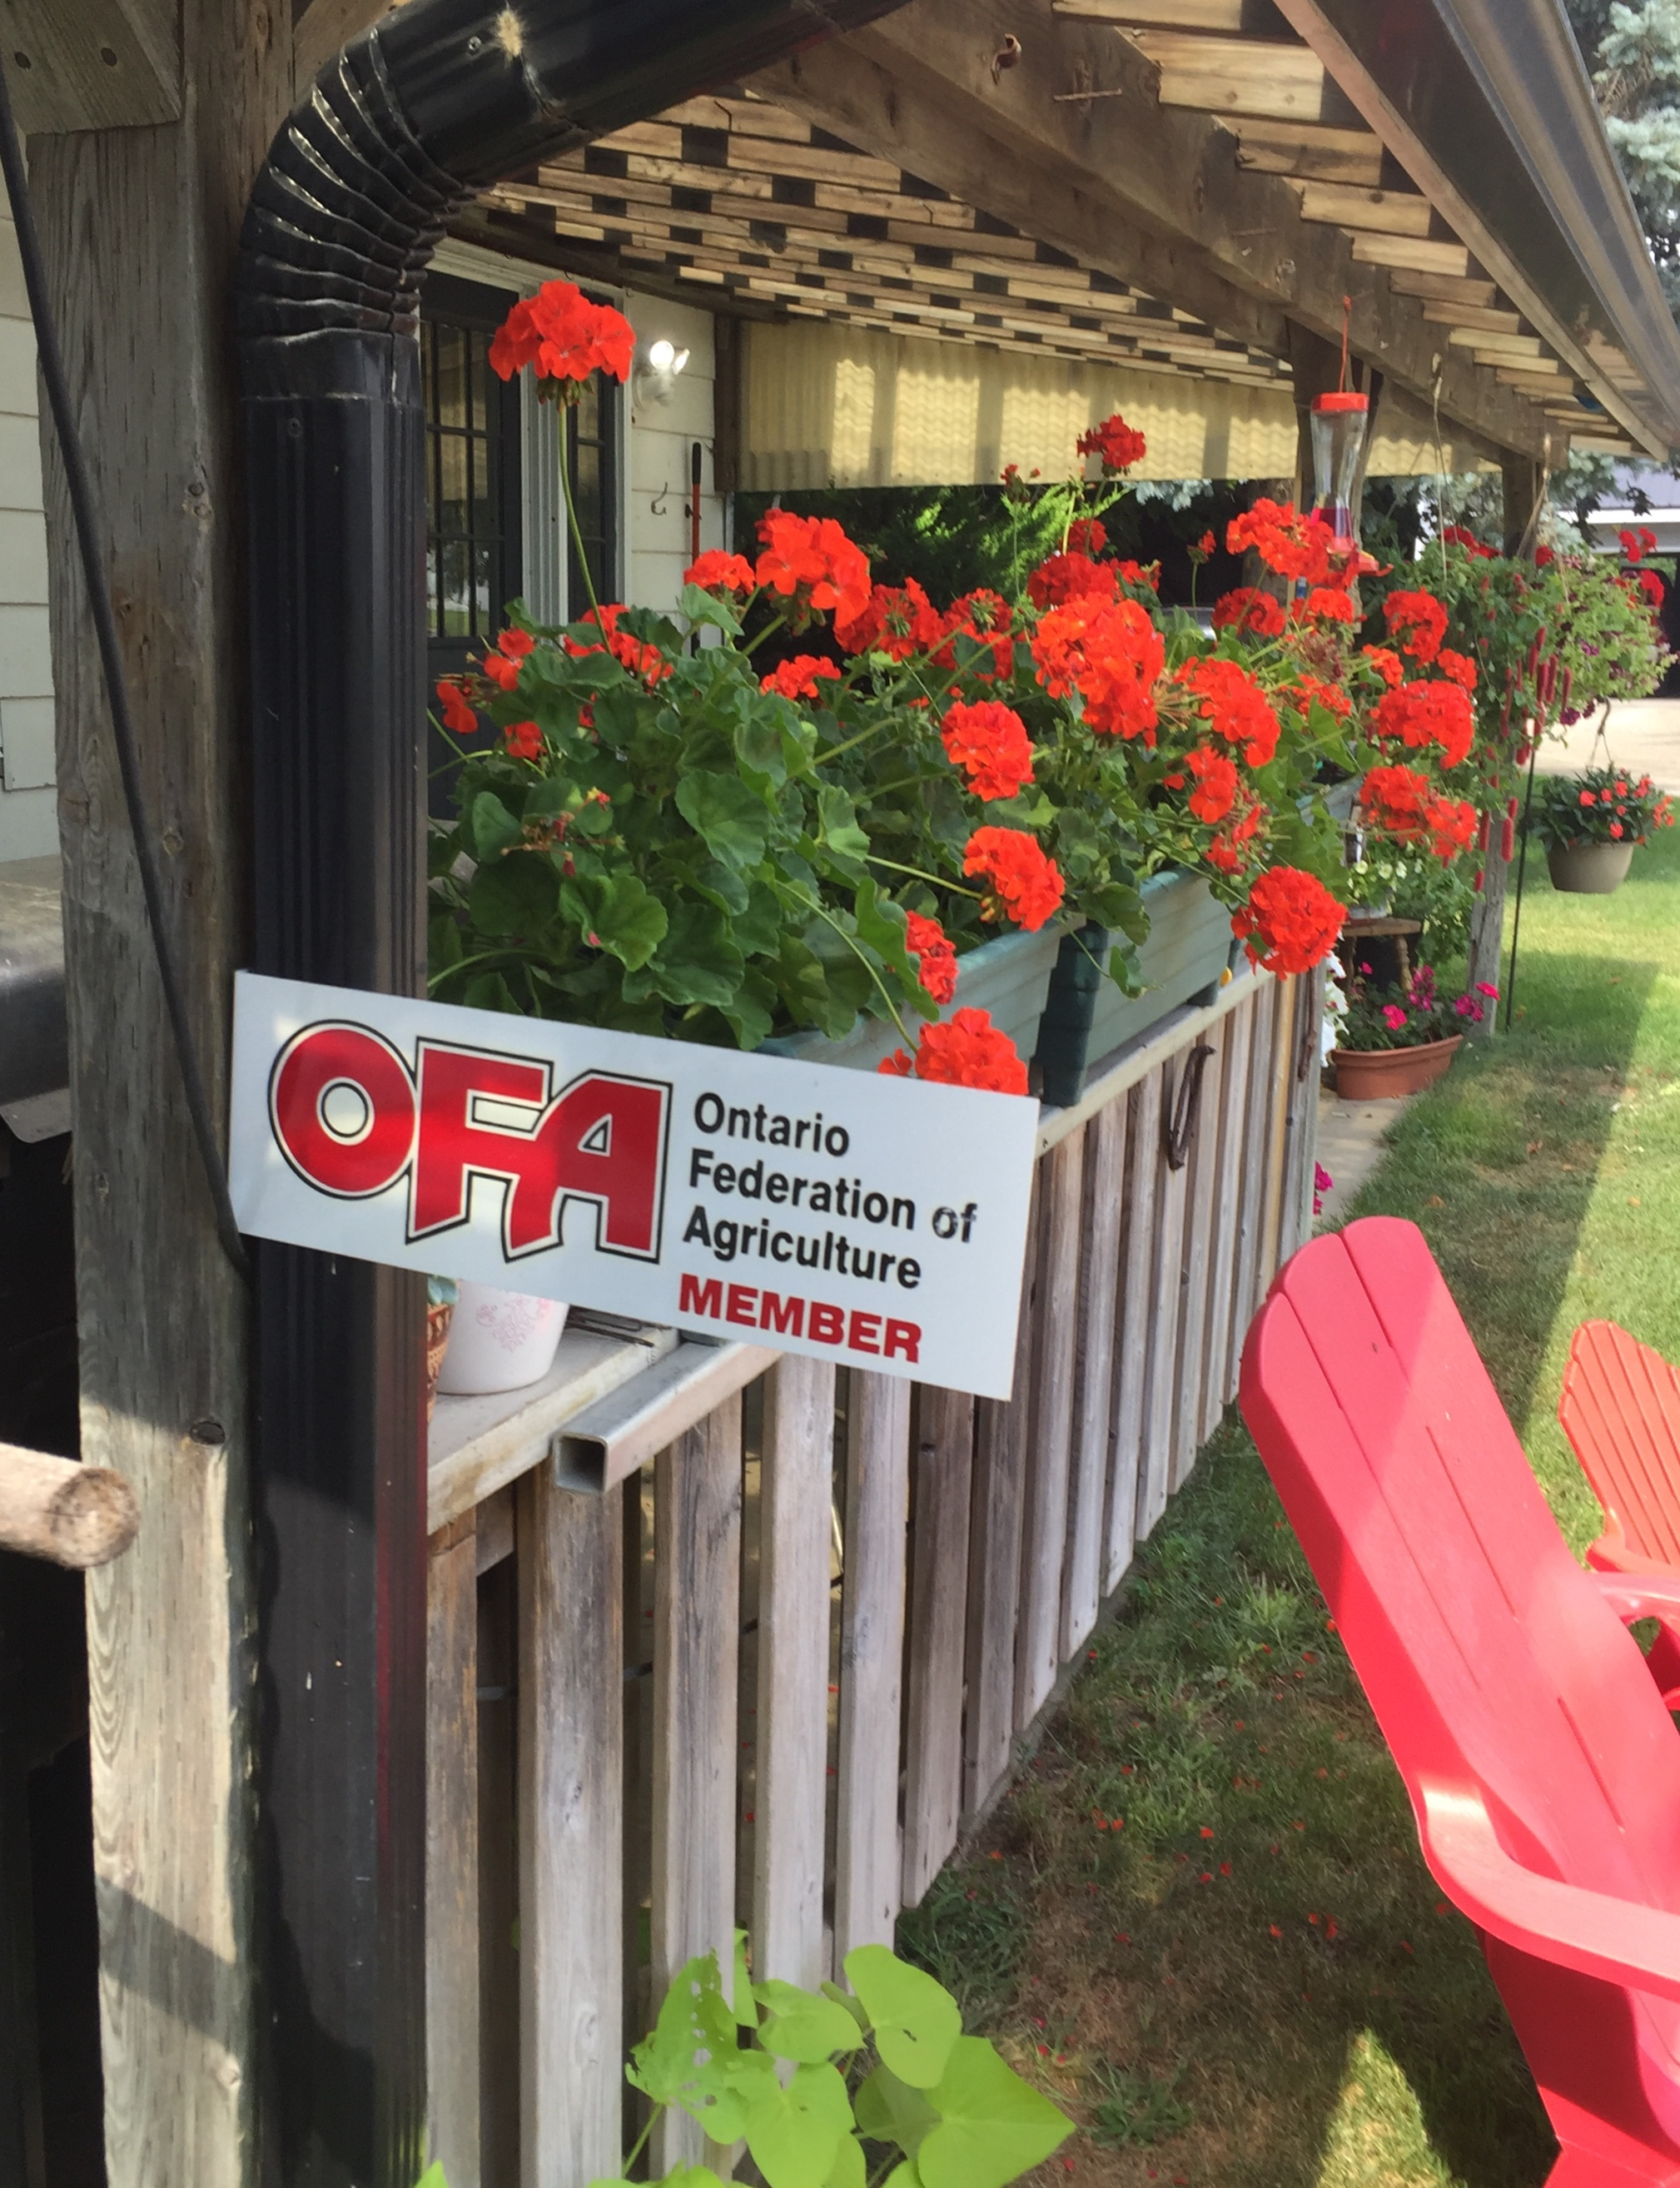 Ontario Federation of Agriculture - Robert is a past Brant County Director of the OFA. Support farm families and businesses.